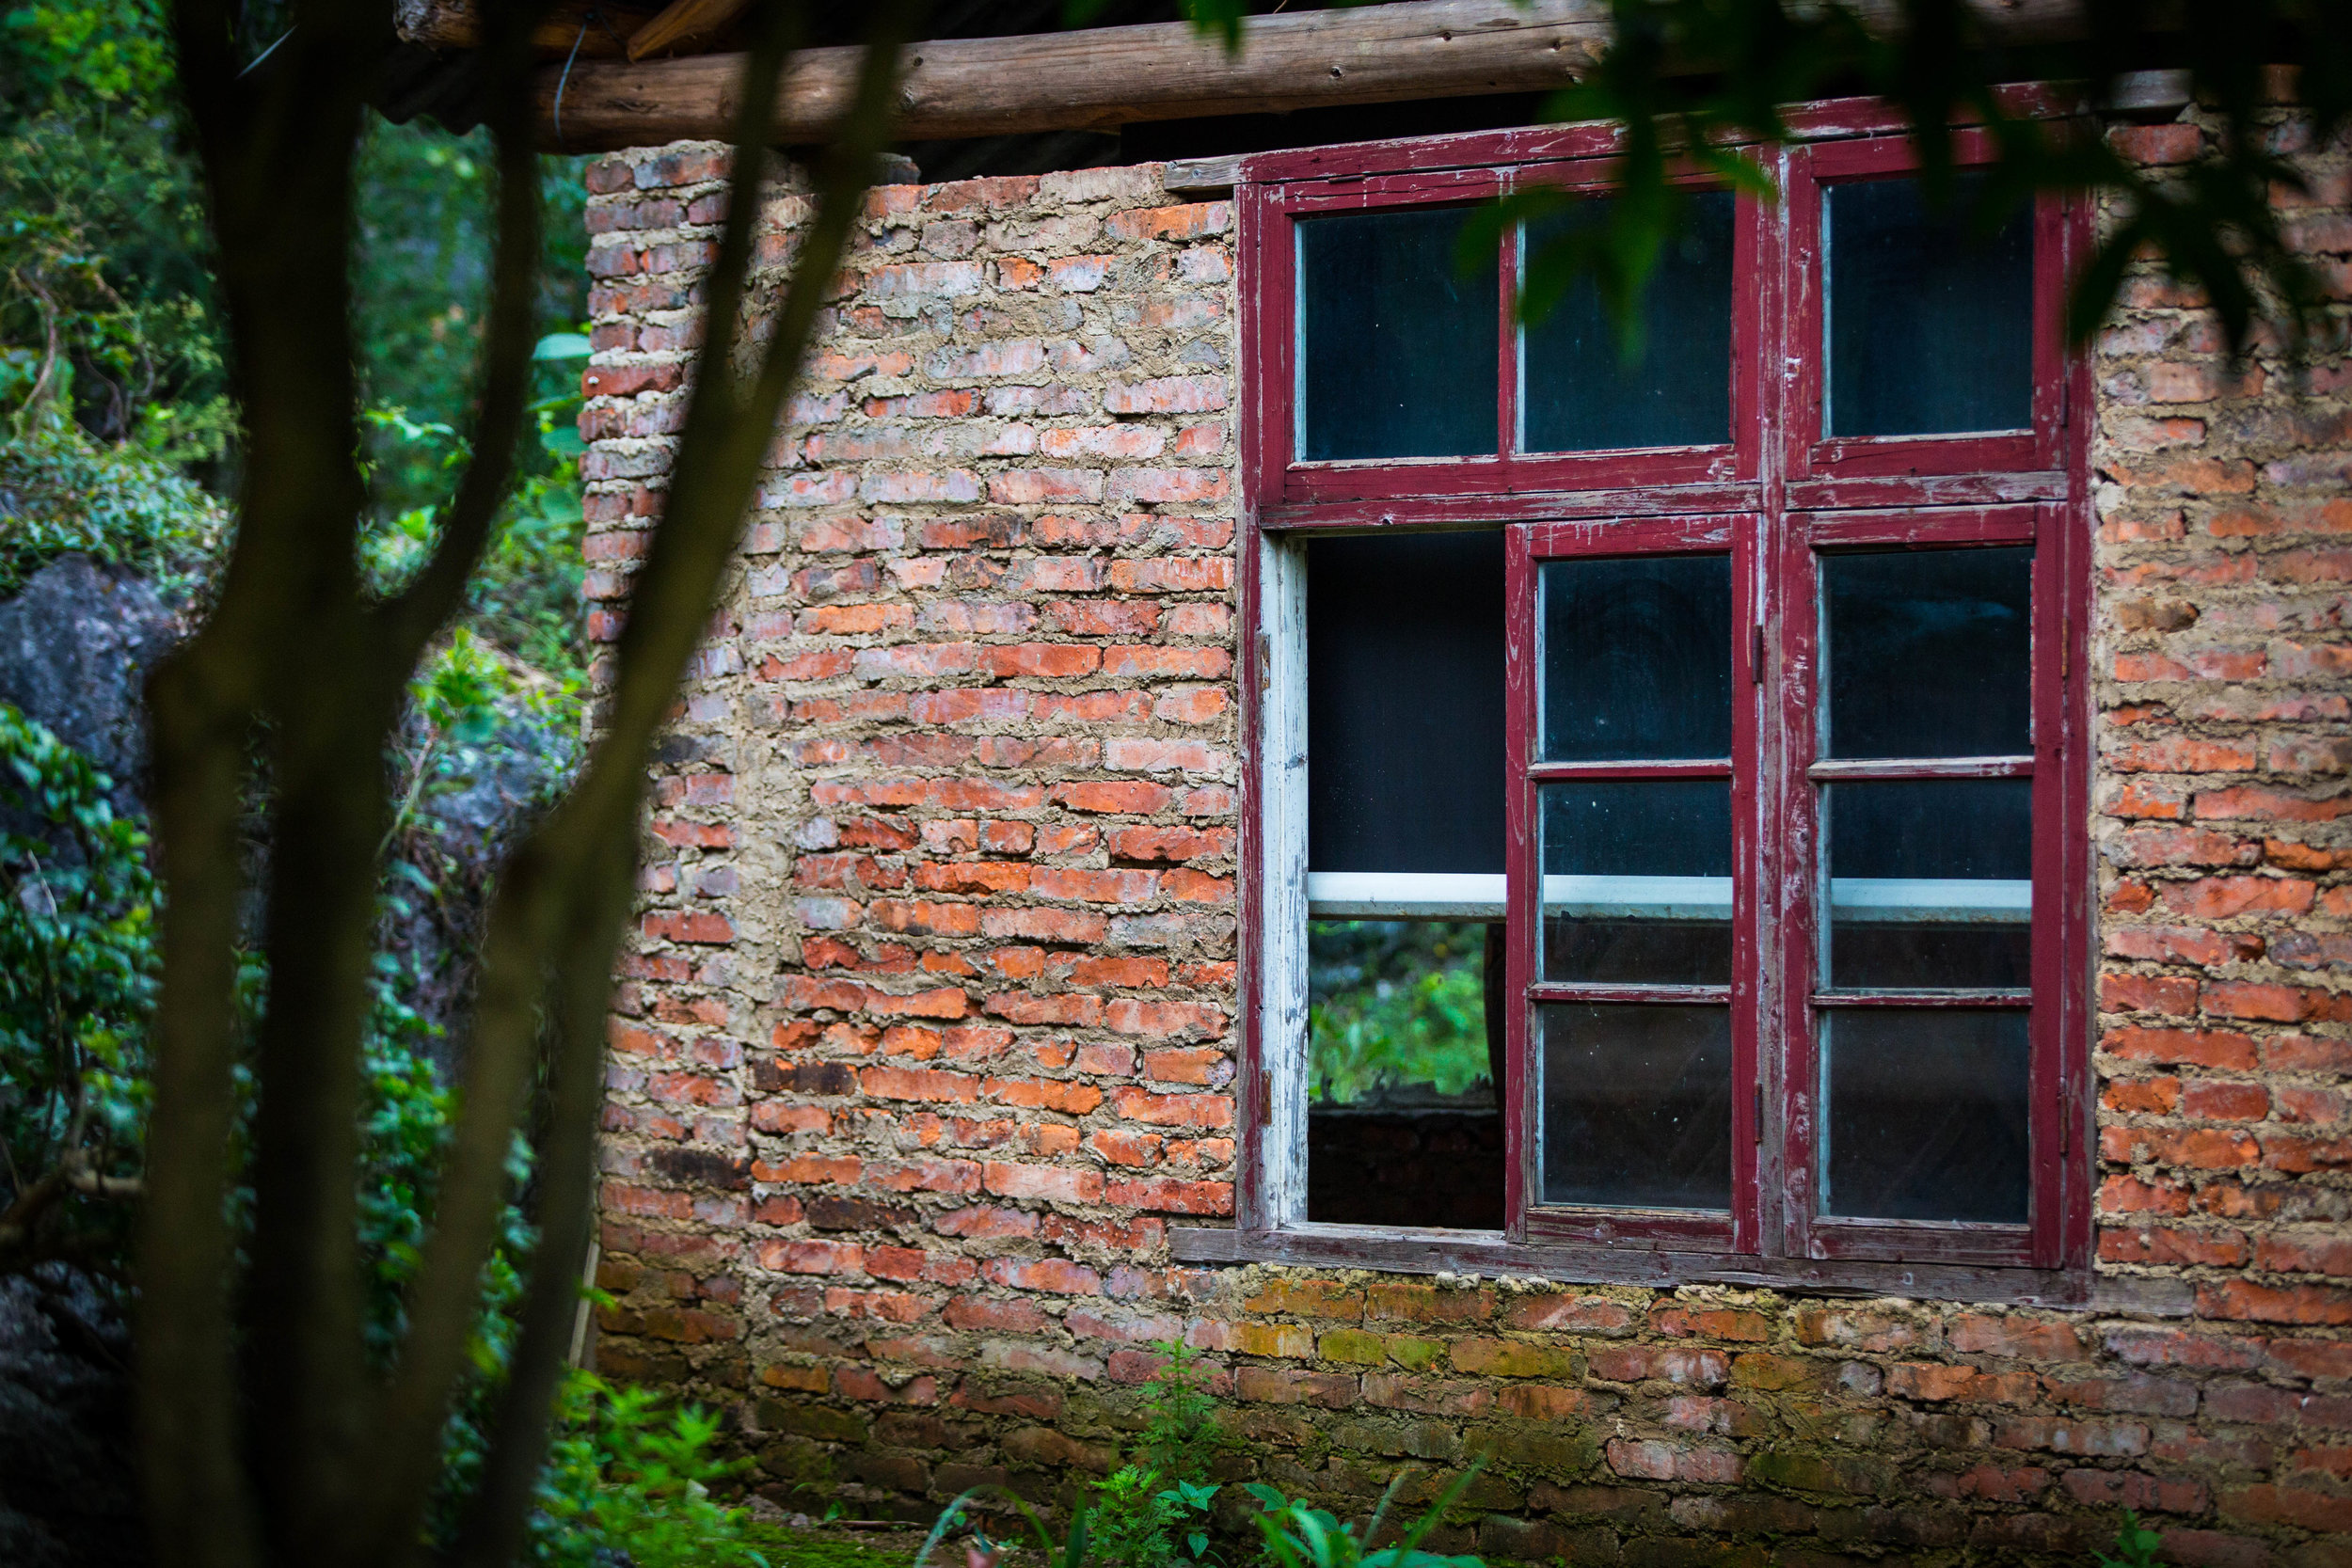 Guilin country window 2 (1 of 1).jpg